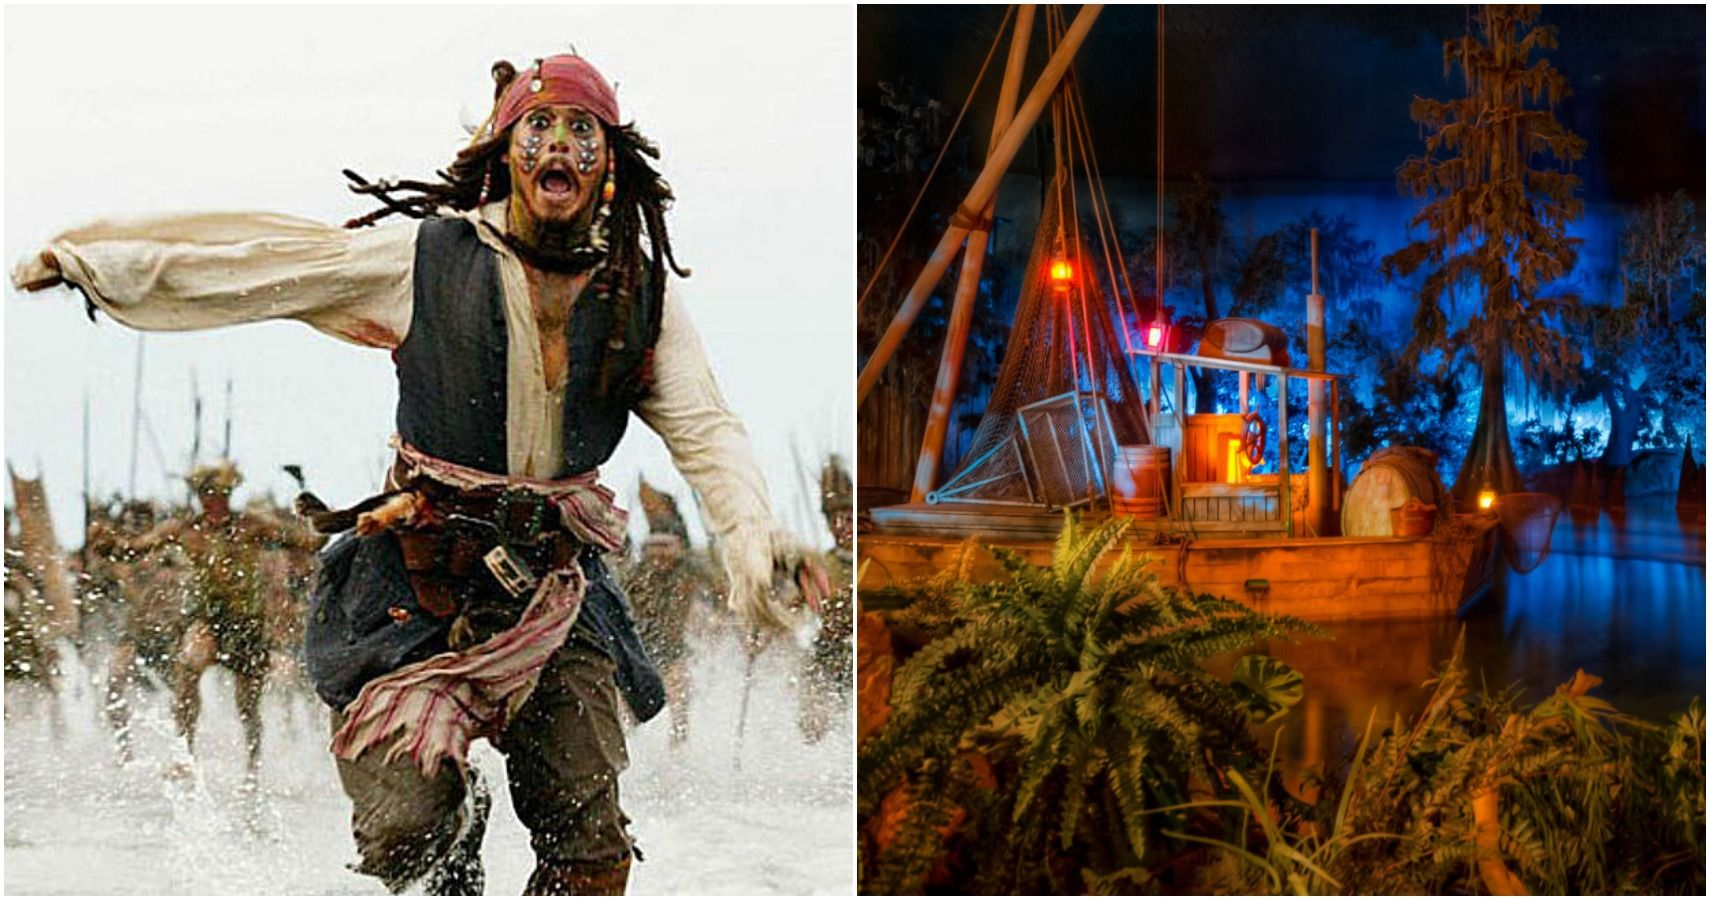 Pirates Of The Caribbean: 5 Ways The Ride Inspired The Movie (& 5 Ways The Films Changed The Ride)